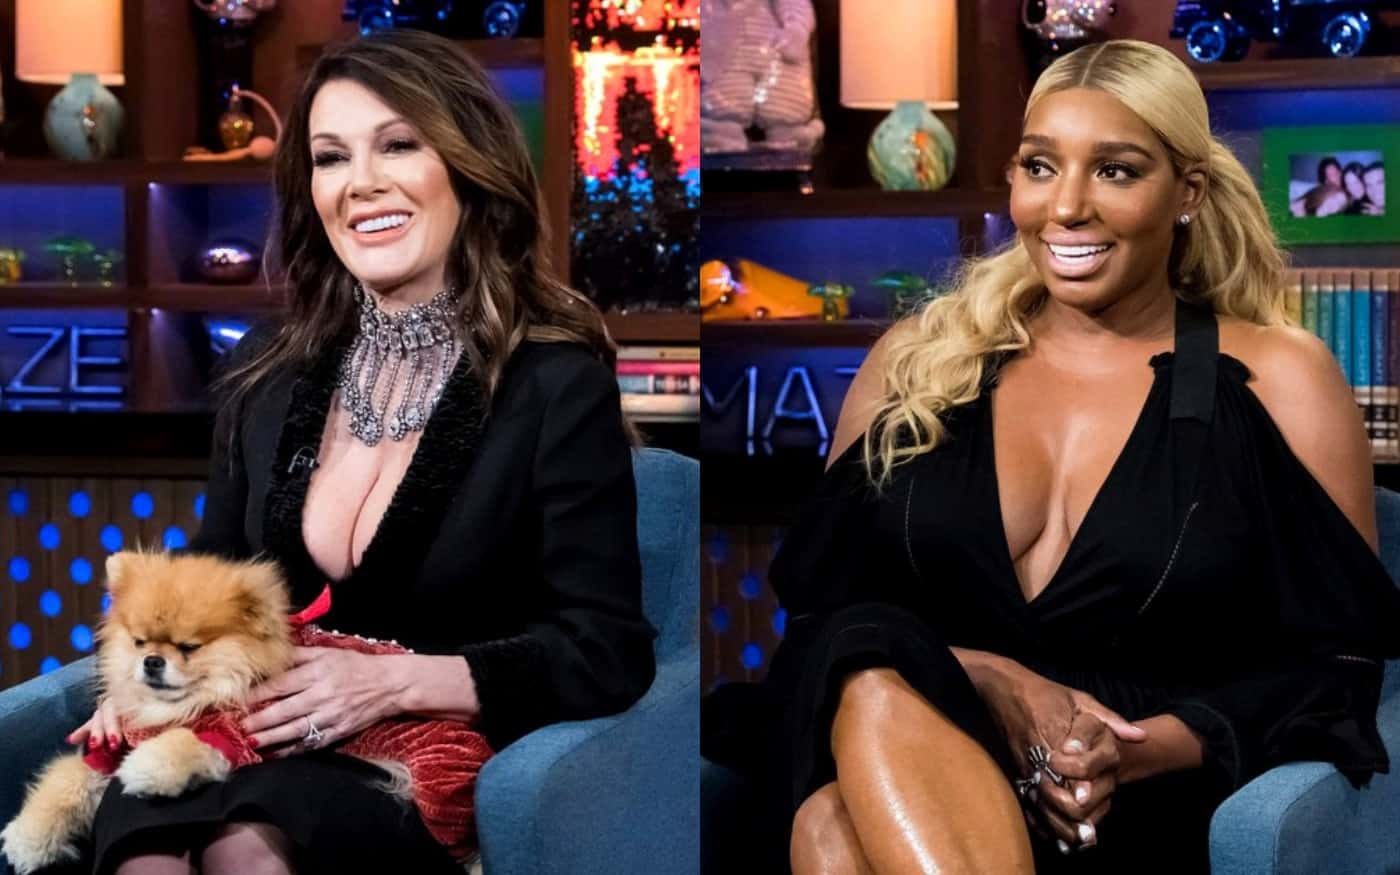 Lisa Vanderpump denies stealing PUMP bar from RHOA Star Nene Leakes